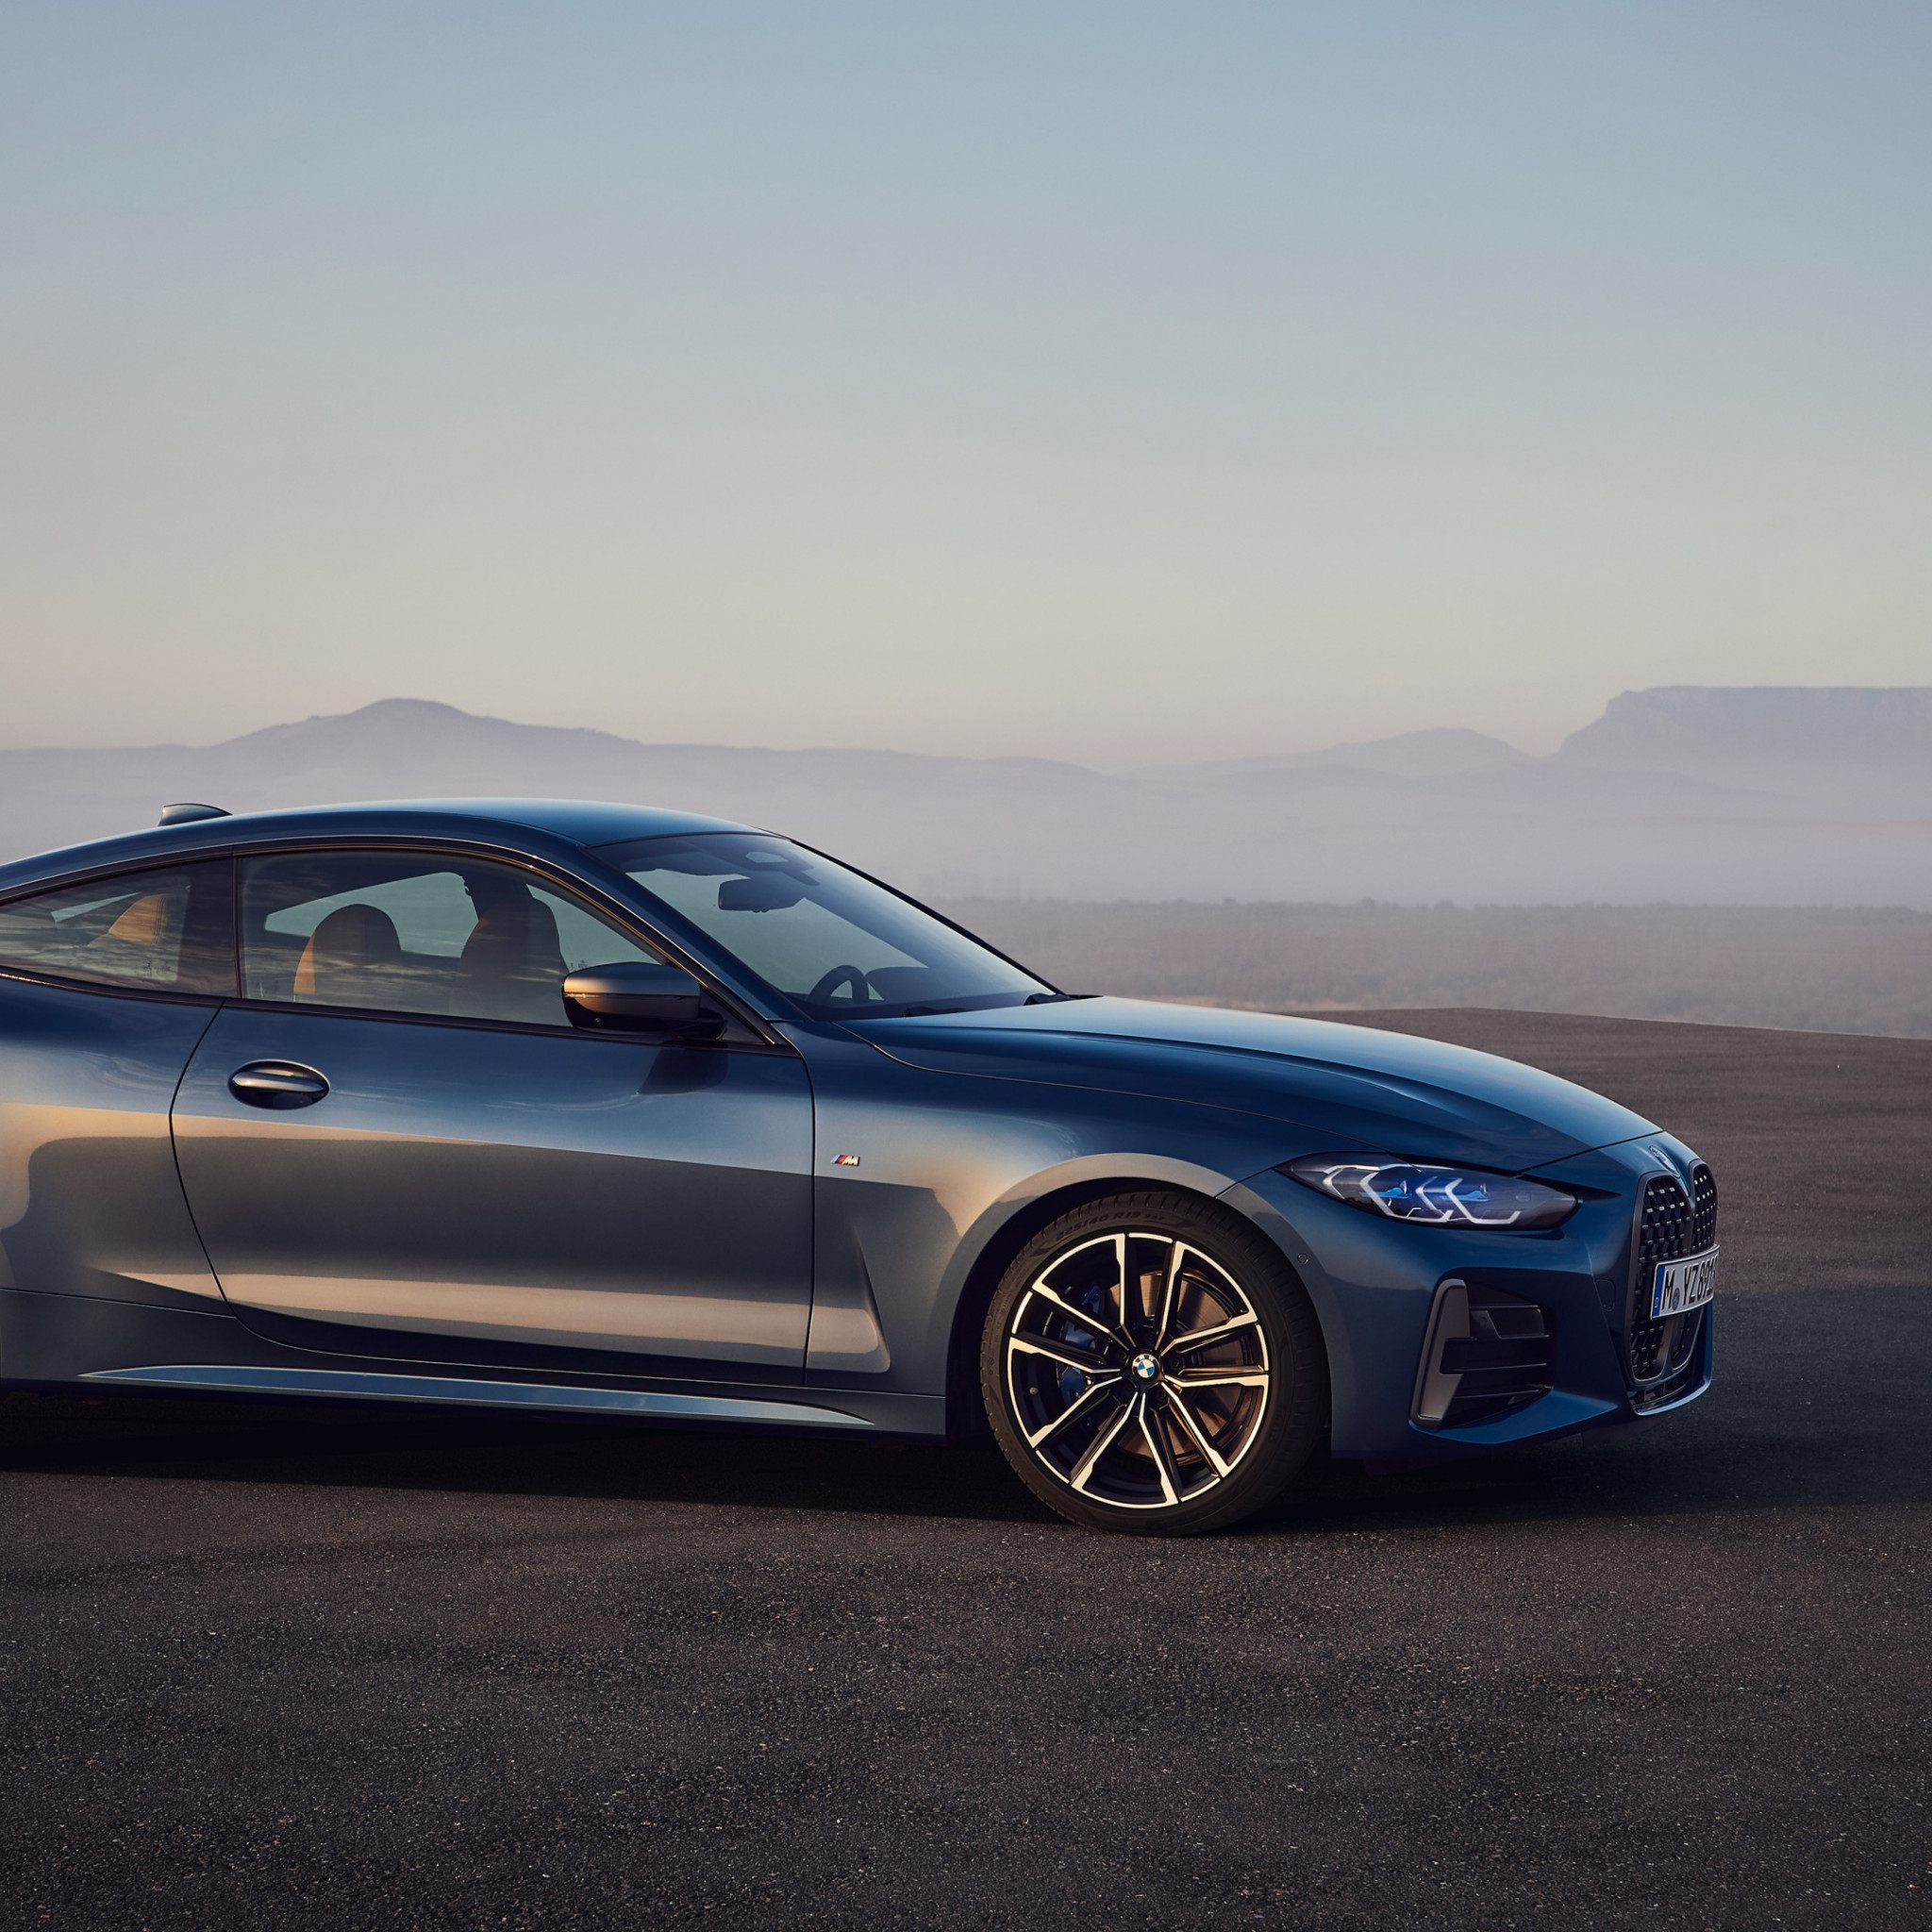 BMW 4 Series Hybrid wallpaper 2048x2048